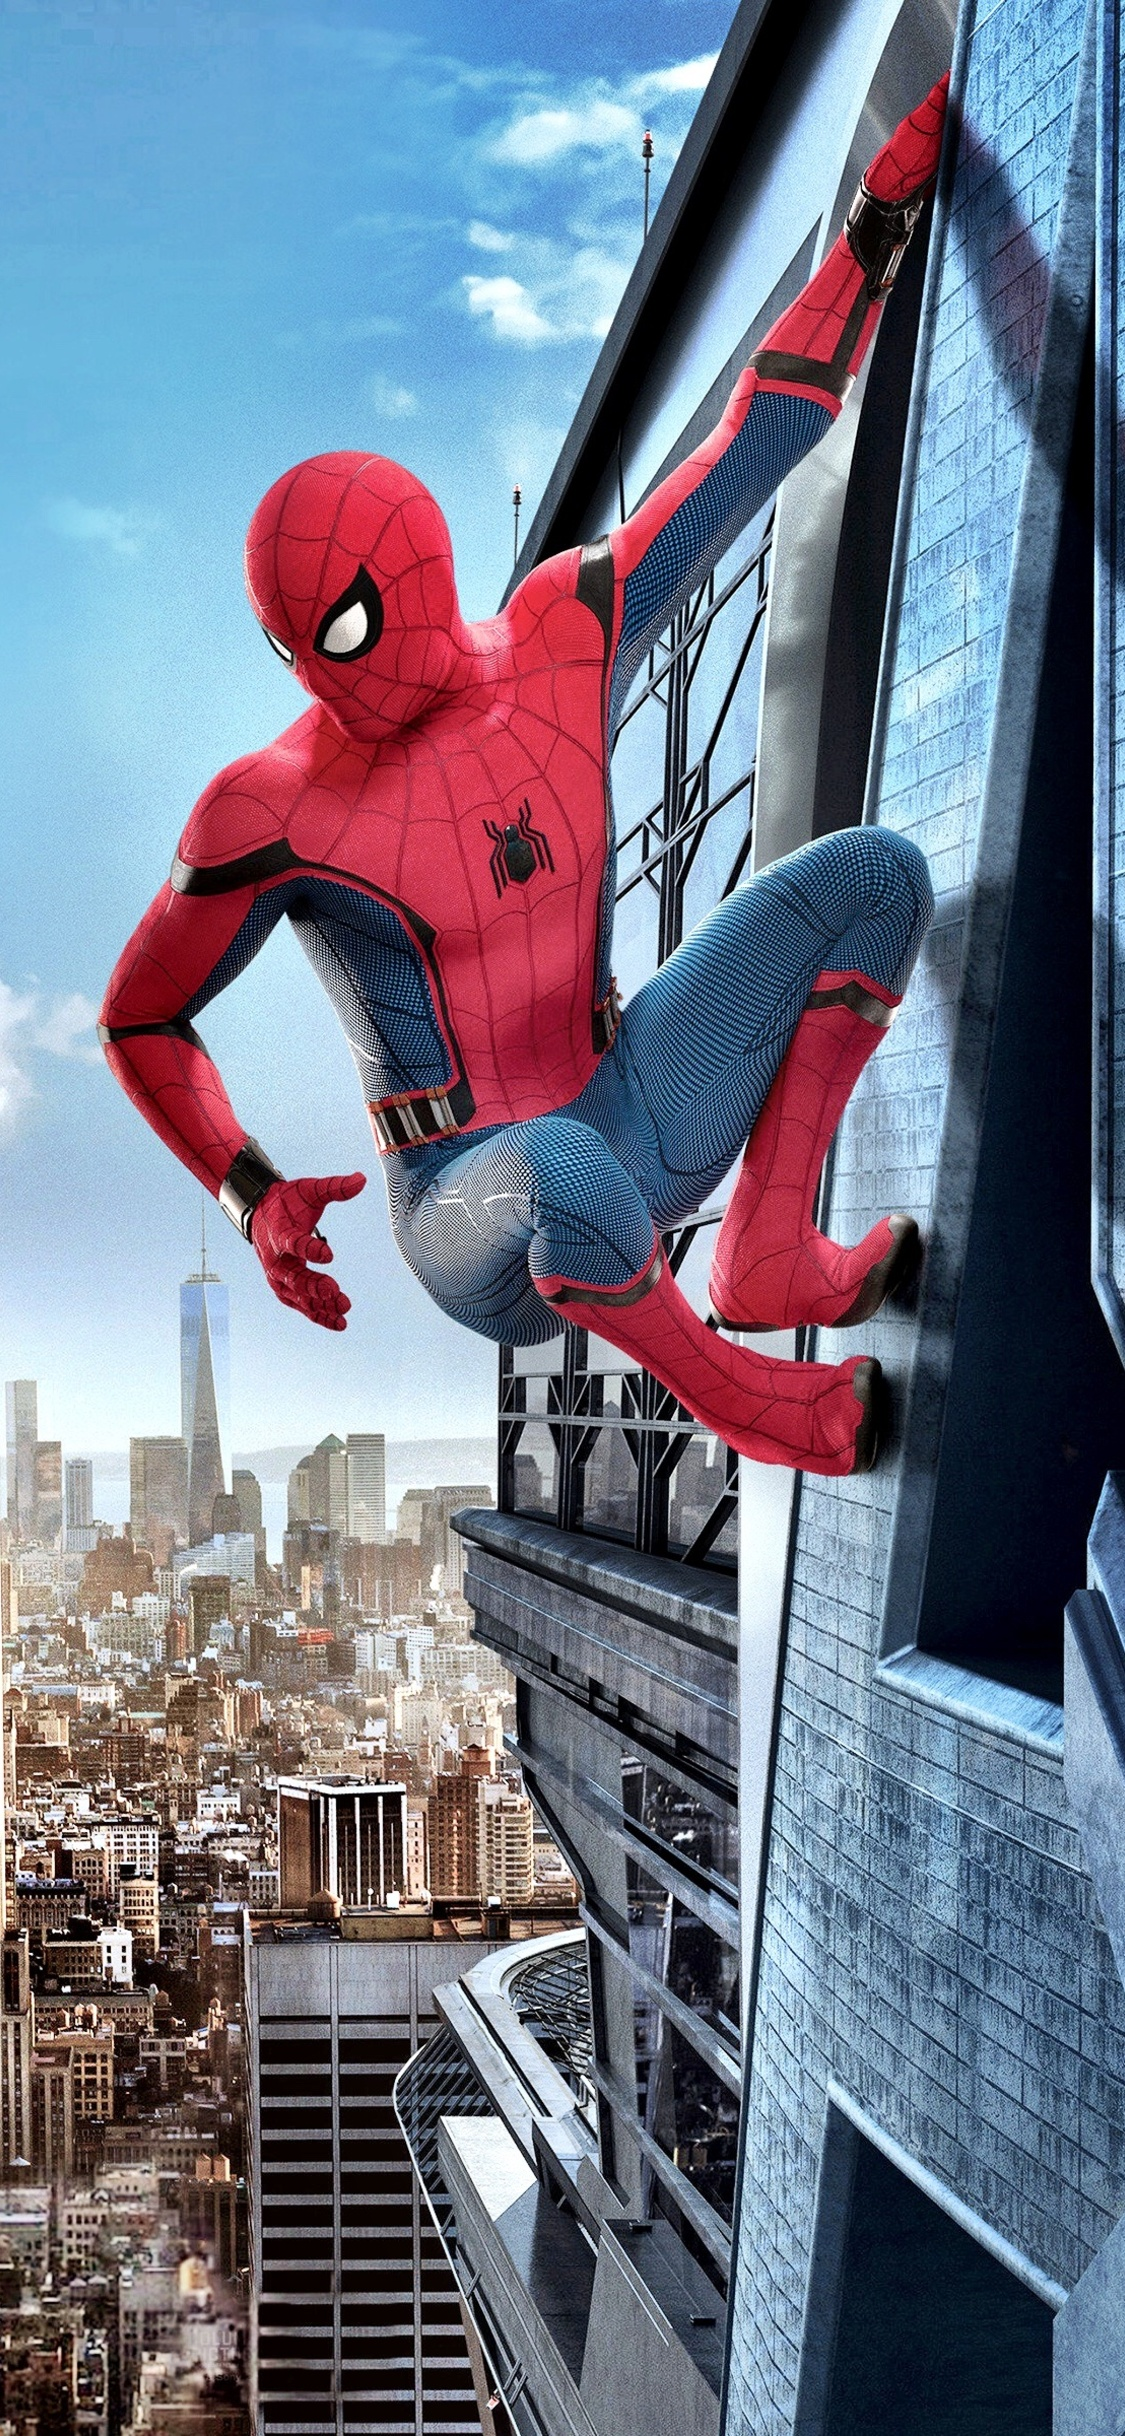 spiderman-homecoming-4k-4h.jpg